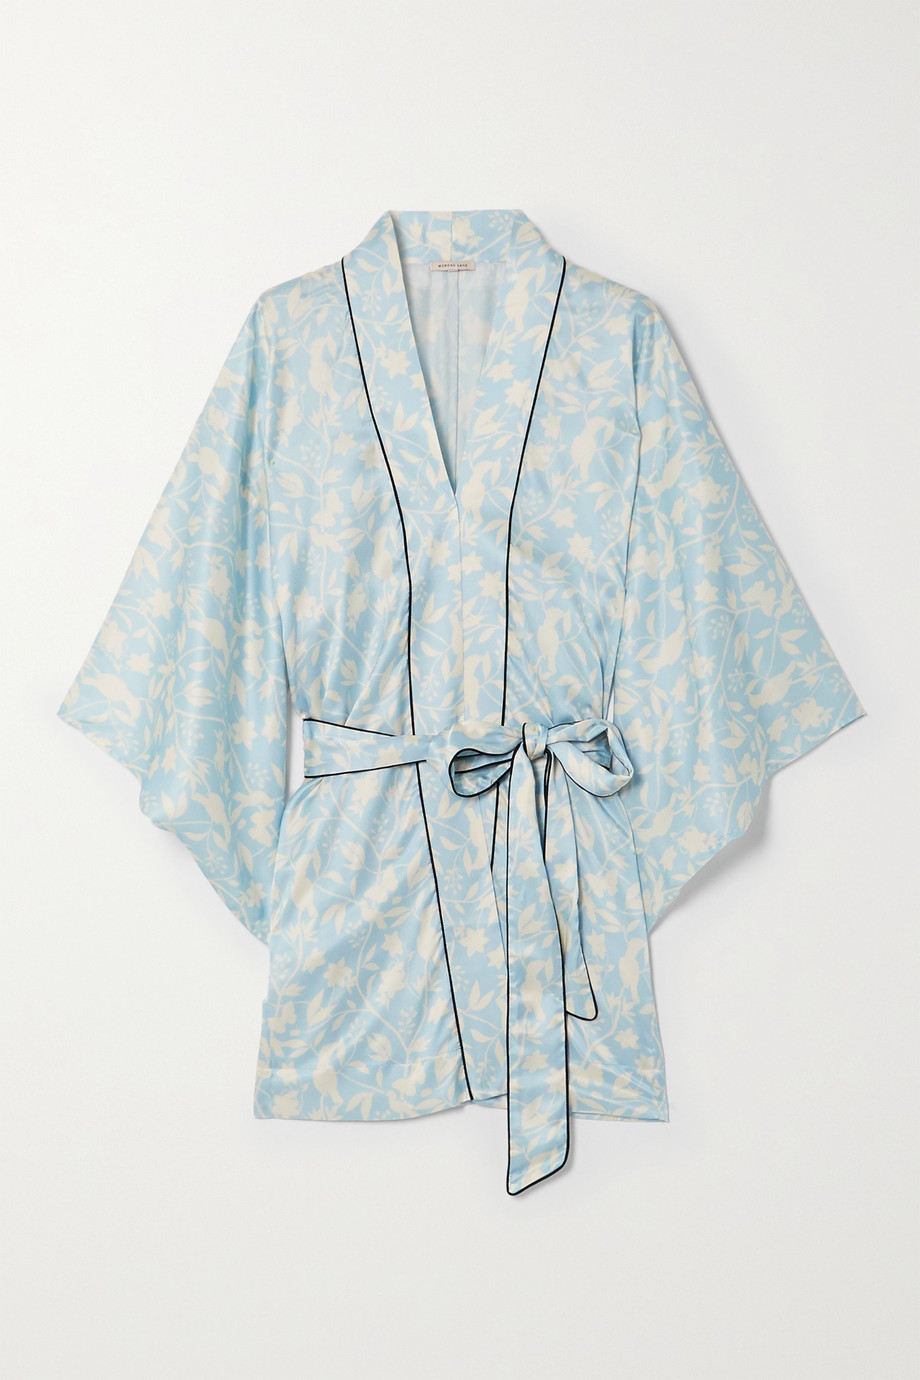 Morgan Lane Nia floral-print satin robe